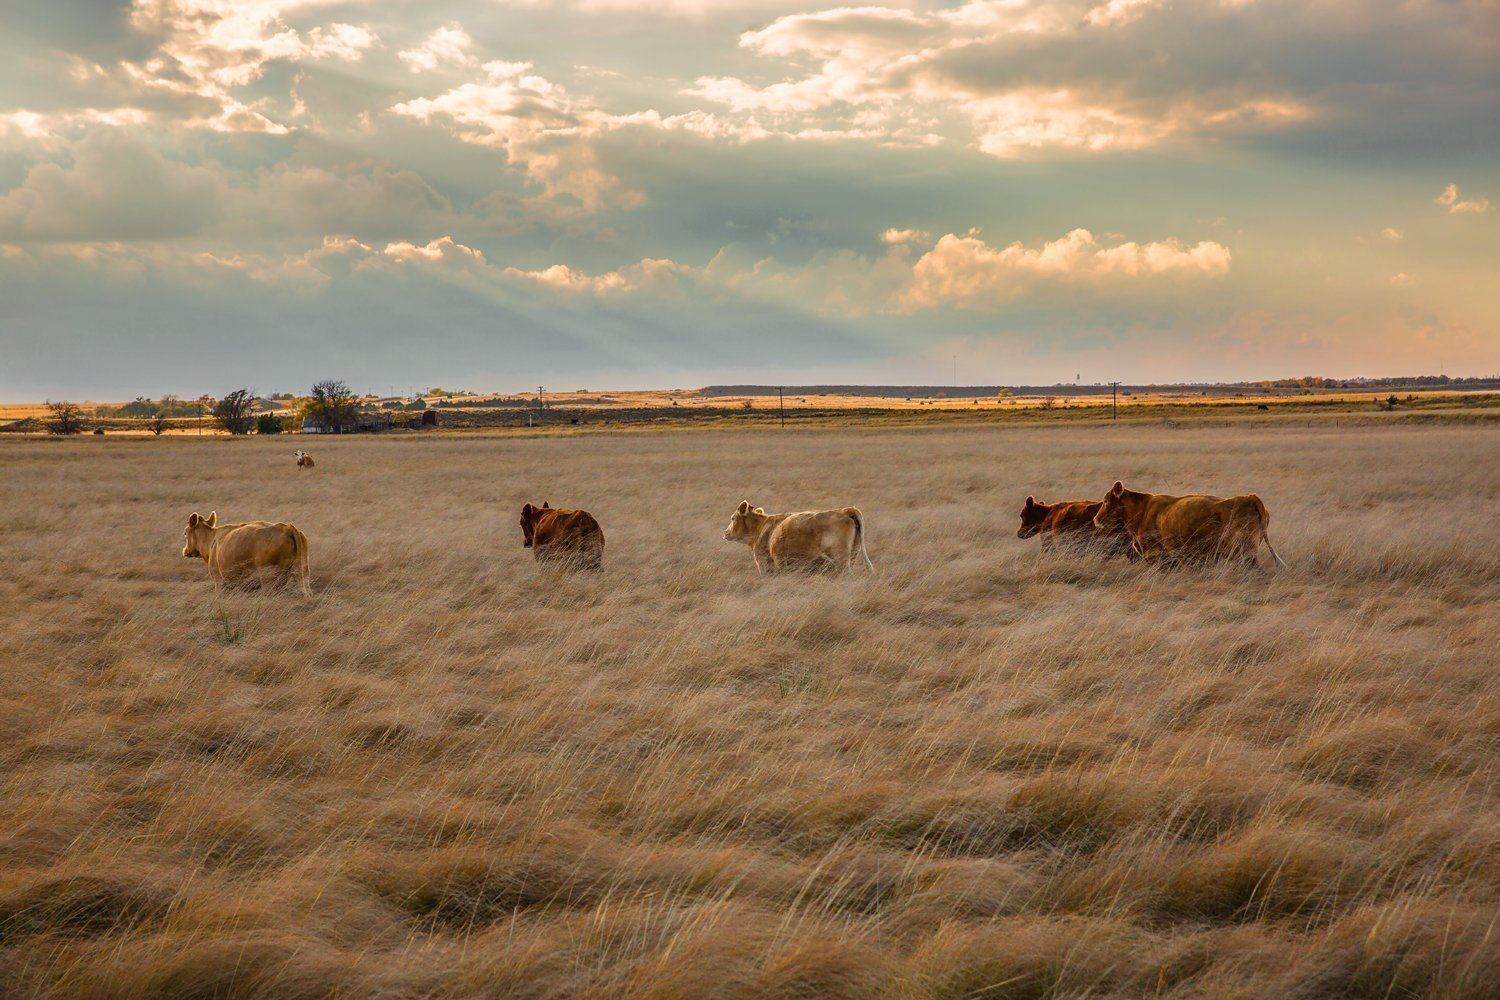 Texas Cattle Photography Art Print - Picture of Cows Wading Through Tall Grass in Panhandle Rustic Country Great Plains Decor Artwork for Home Decoration 5x7 to 30x45